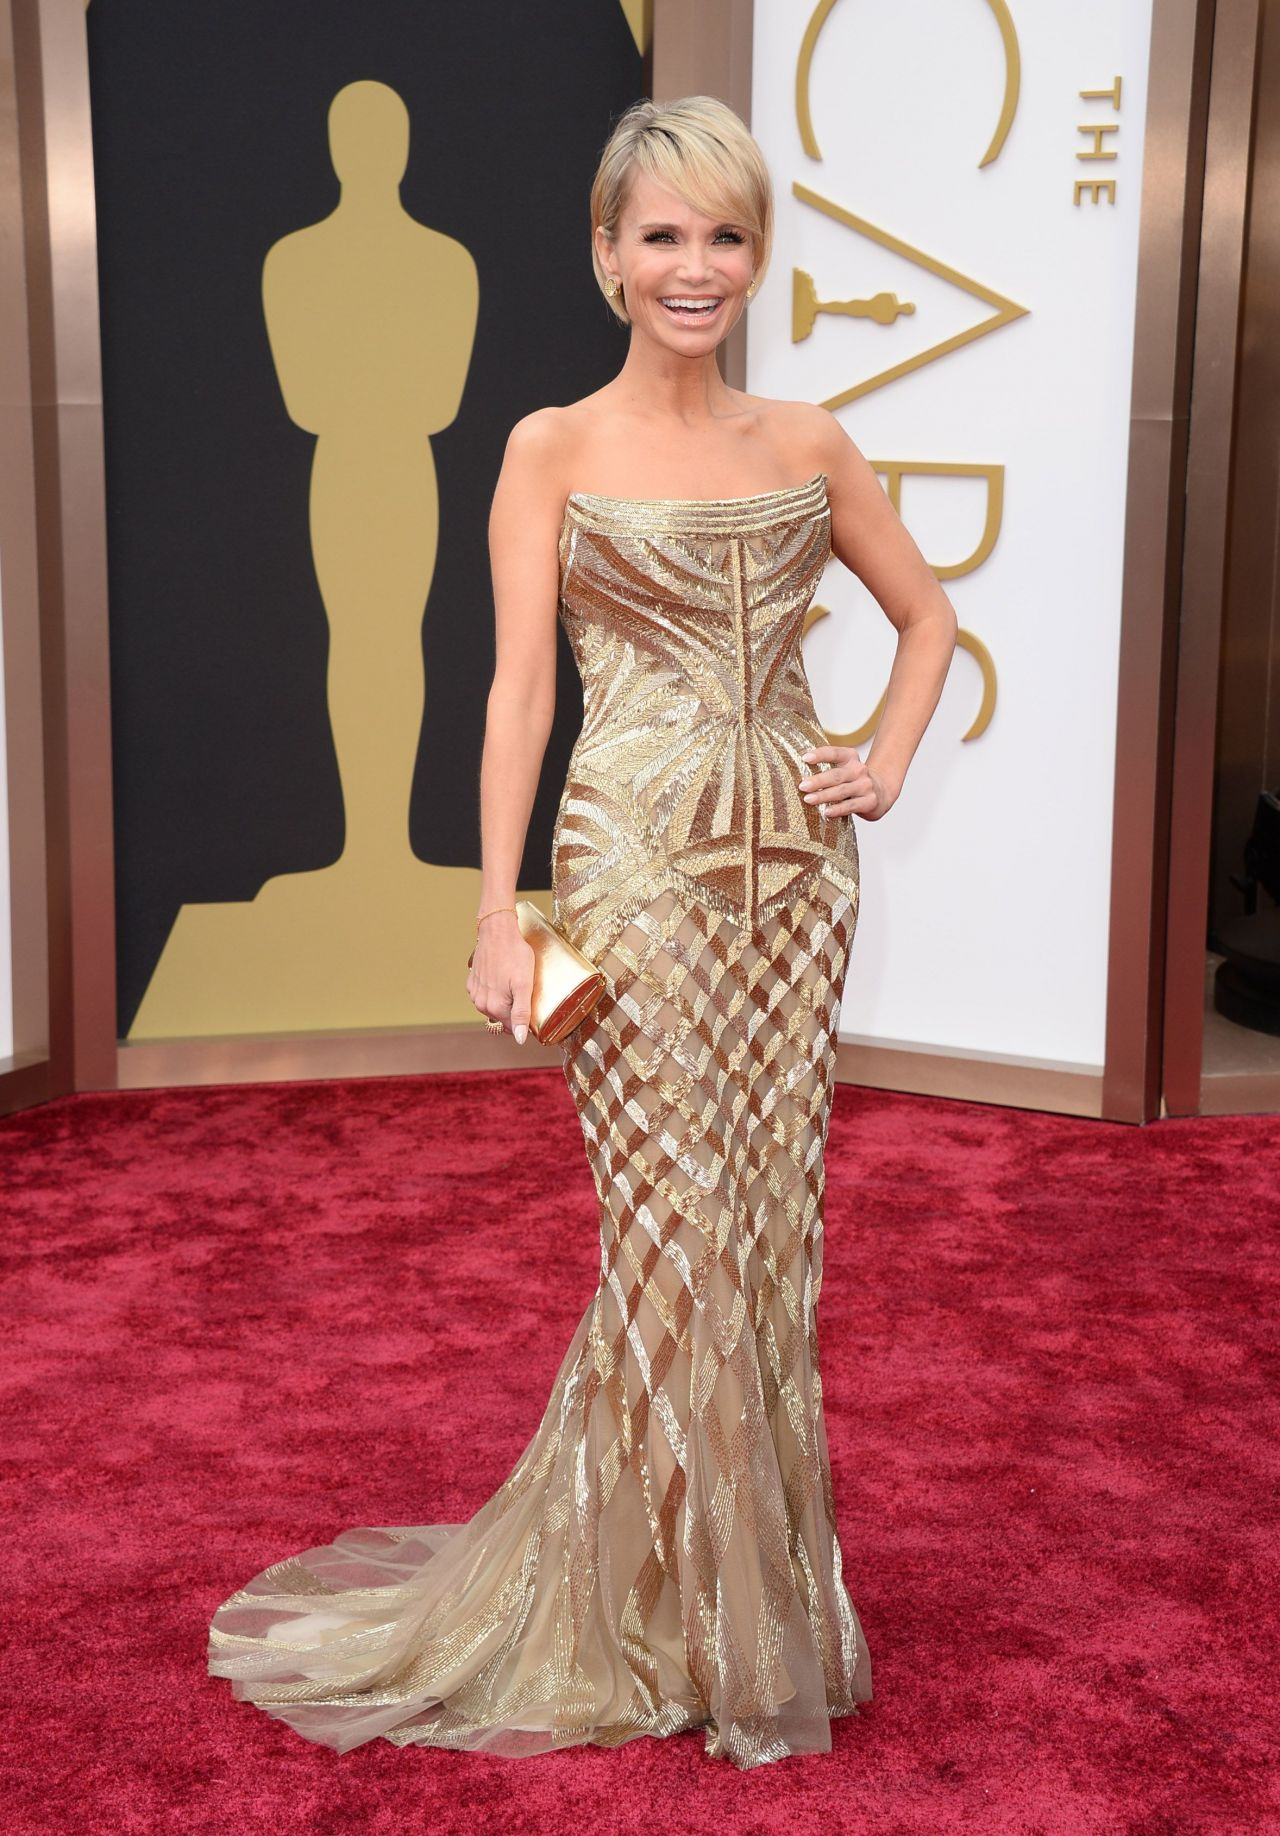 Kristin Chenoweth - 2014 OSCARS Red Carpet